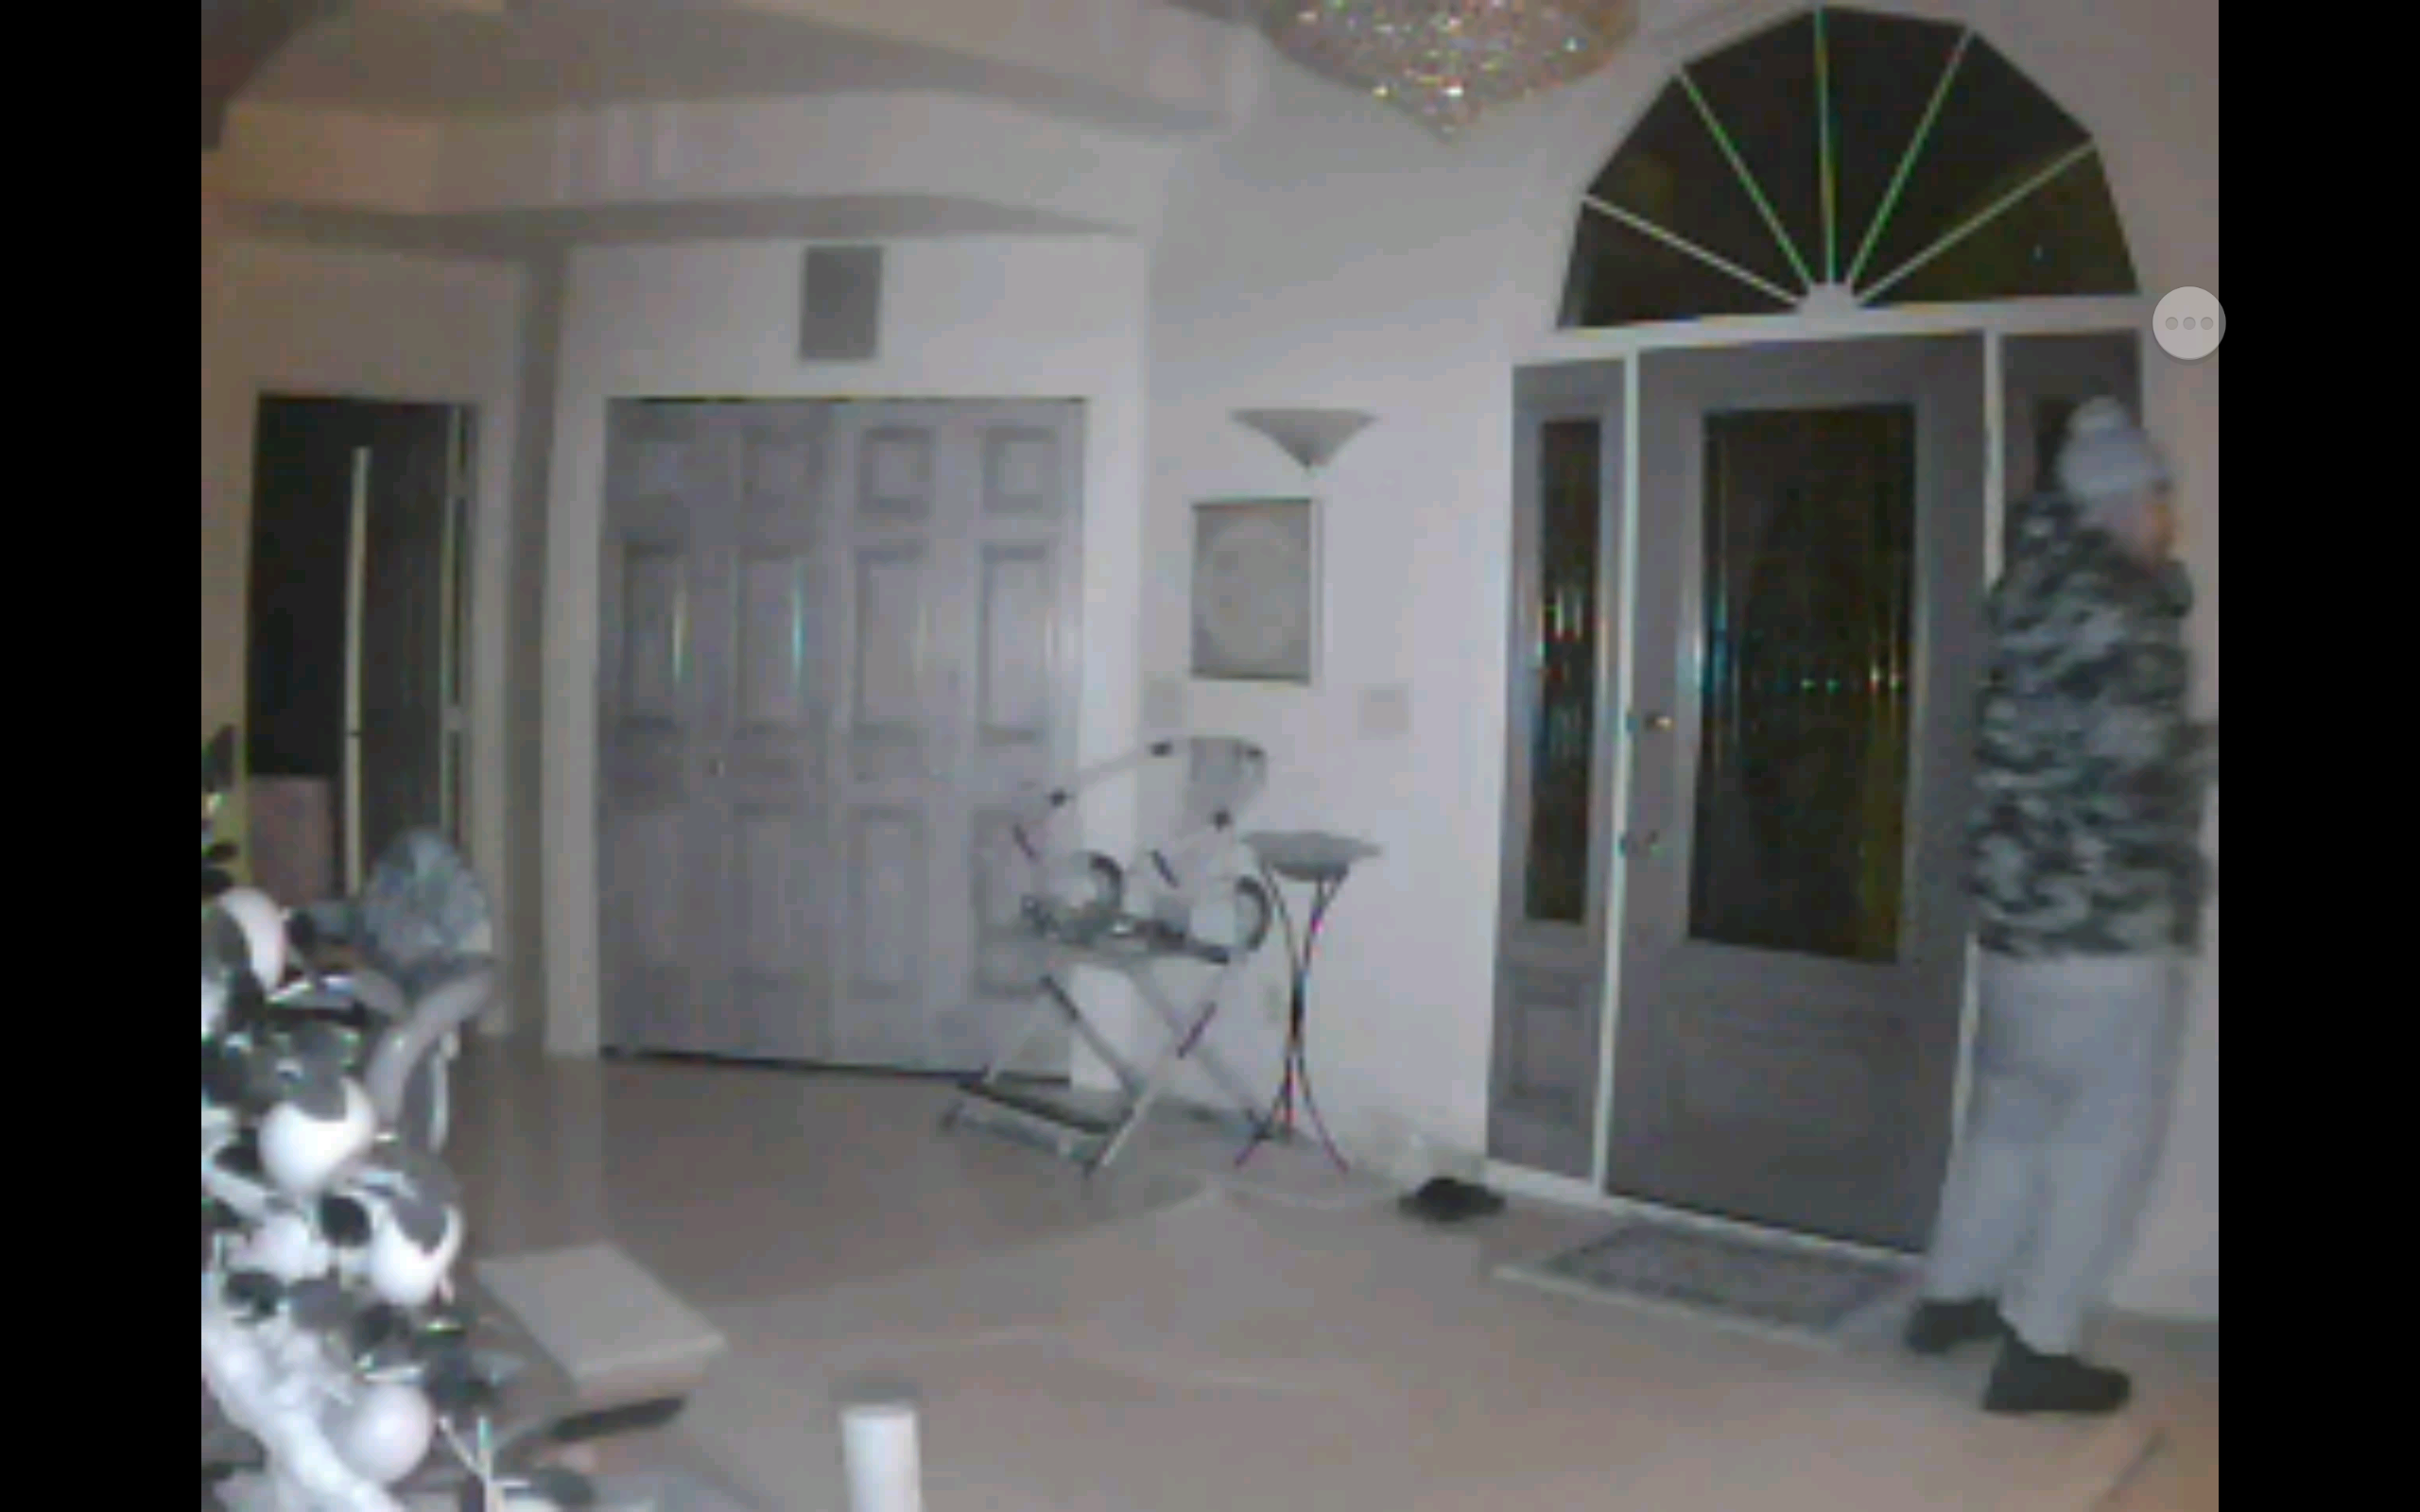 Surveillance video at a home in Bellevue shows a burglary suspect, December 15, 2017. (Photo courtesy of Brown County Sheriff's Office)<p></p>